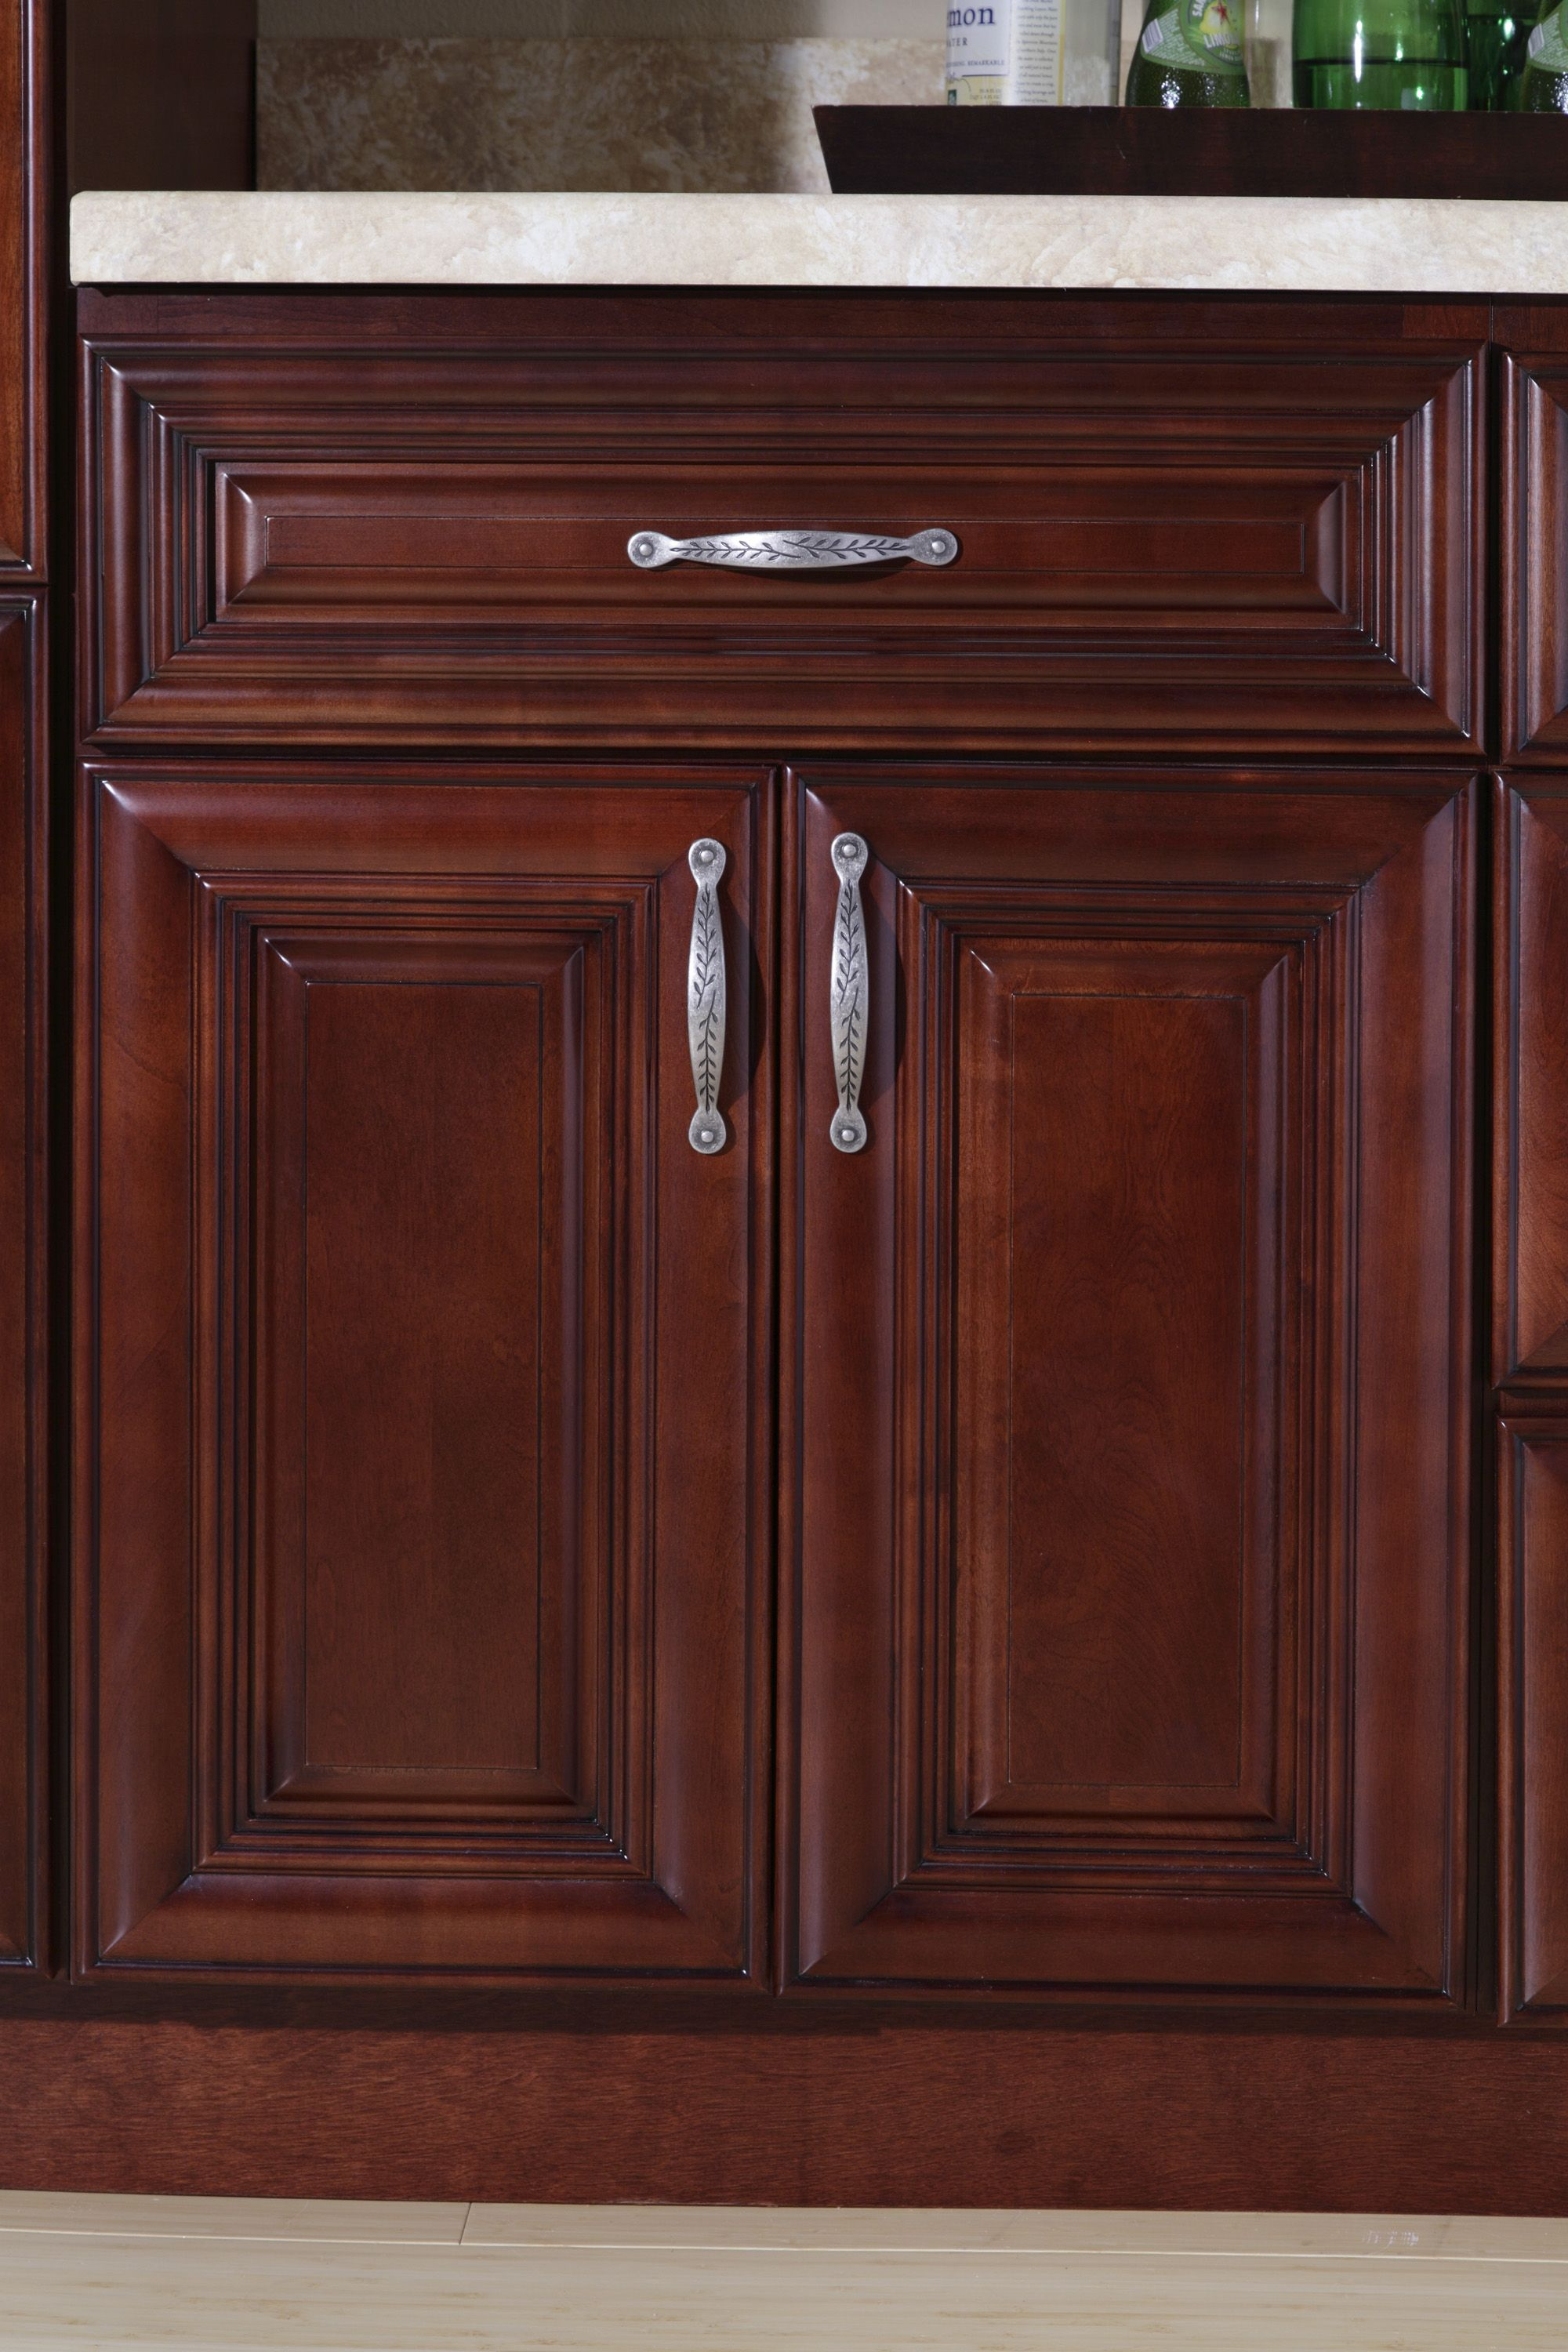 Best Quality Kitchen Cabinets B Jorgsen Co St James Mahogany Kitchen Cabinets For The